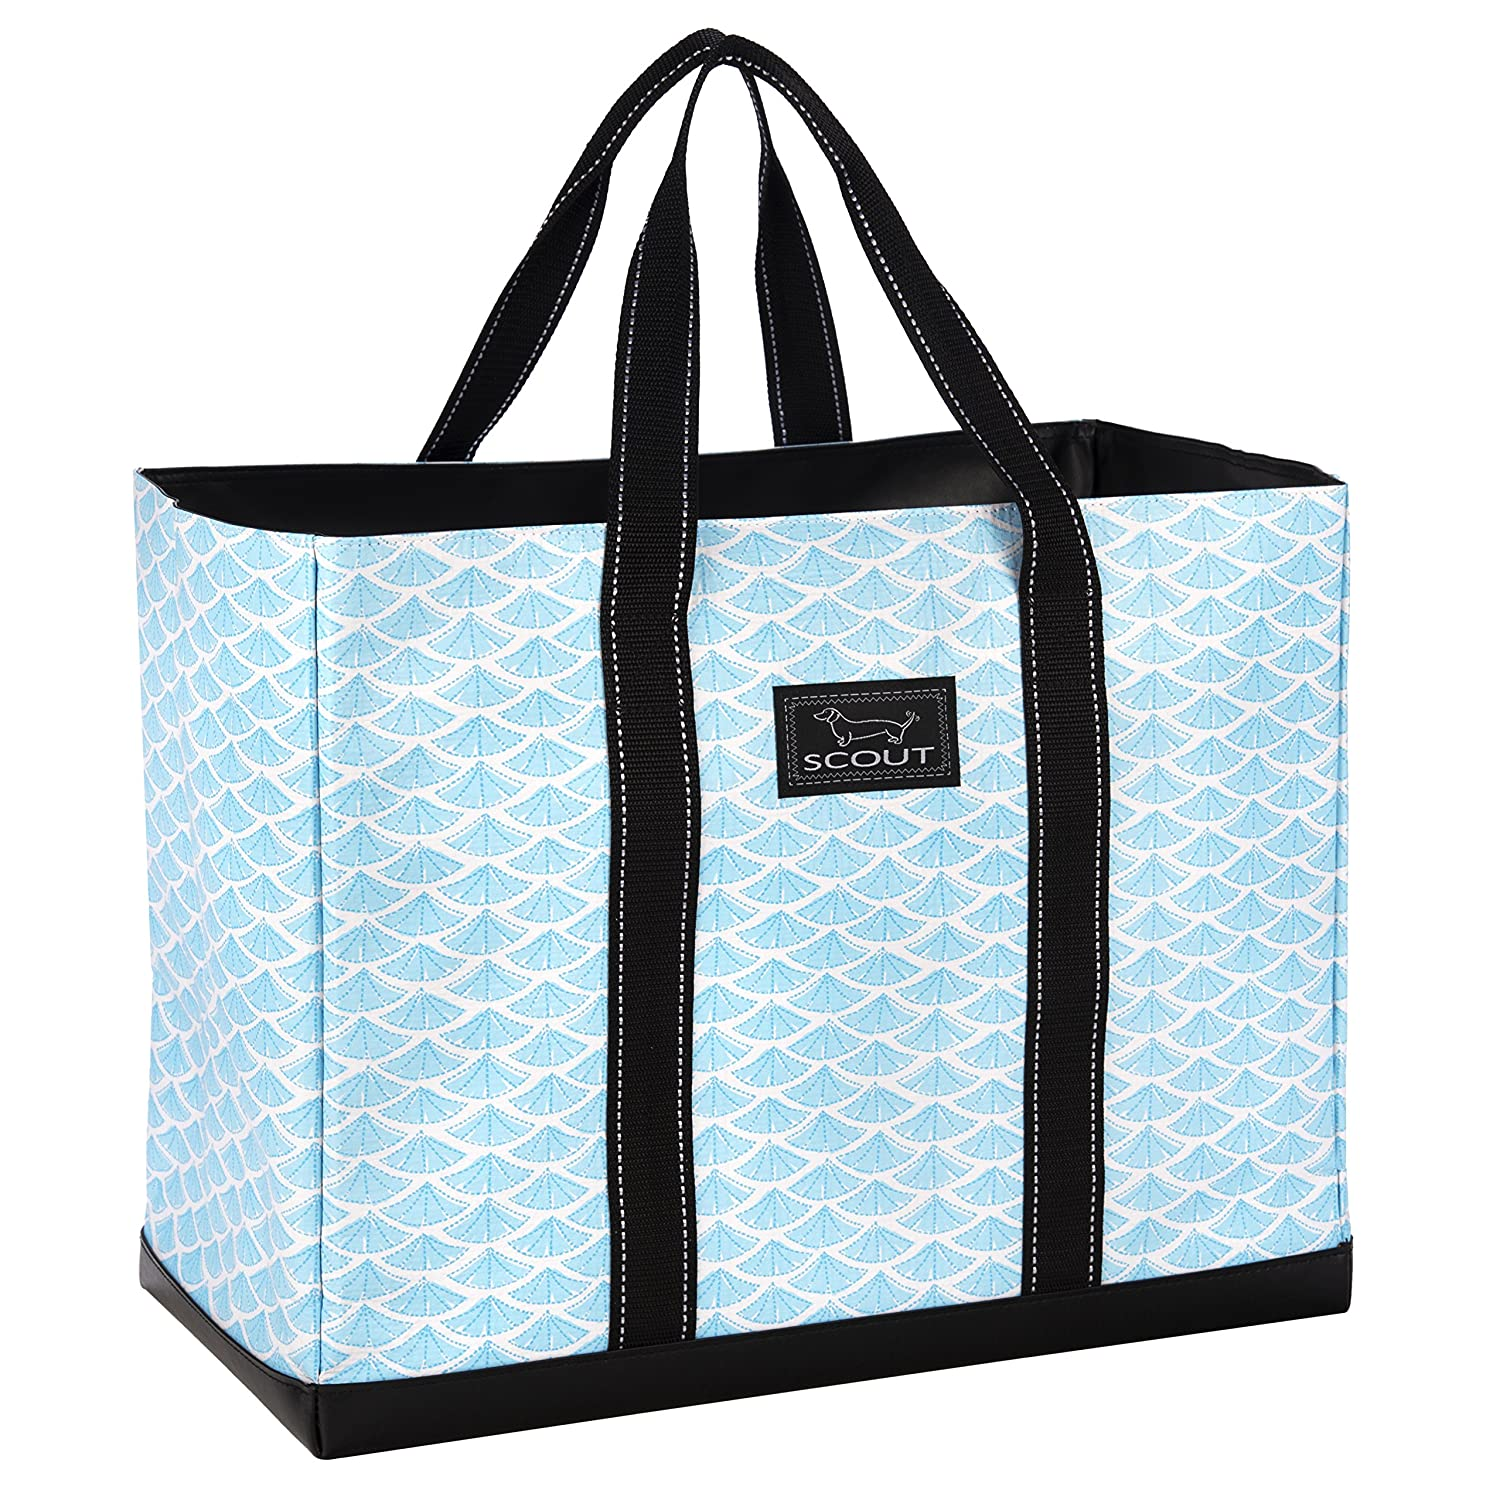 Swimfan SCOUT Original DEANO Tote Bag, Water Resistant Large Tote Bag for Women (Multiple Patterns Available) (Rock The Boat)